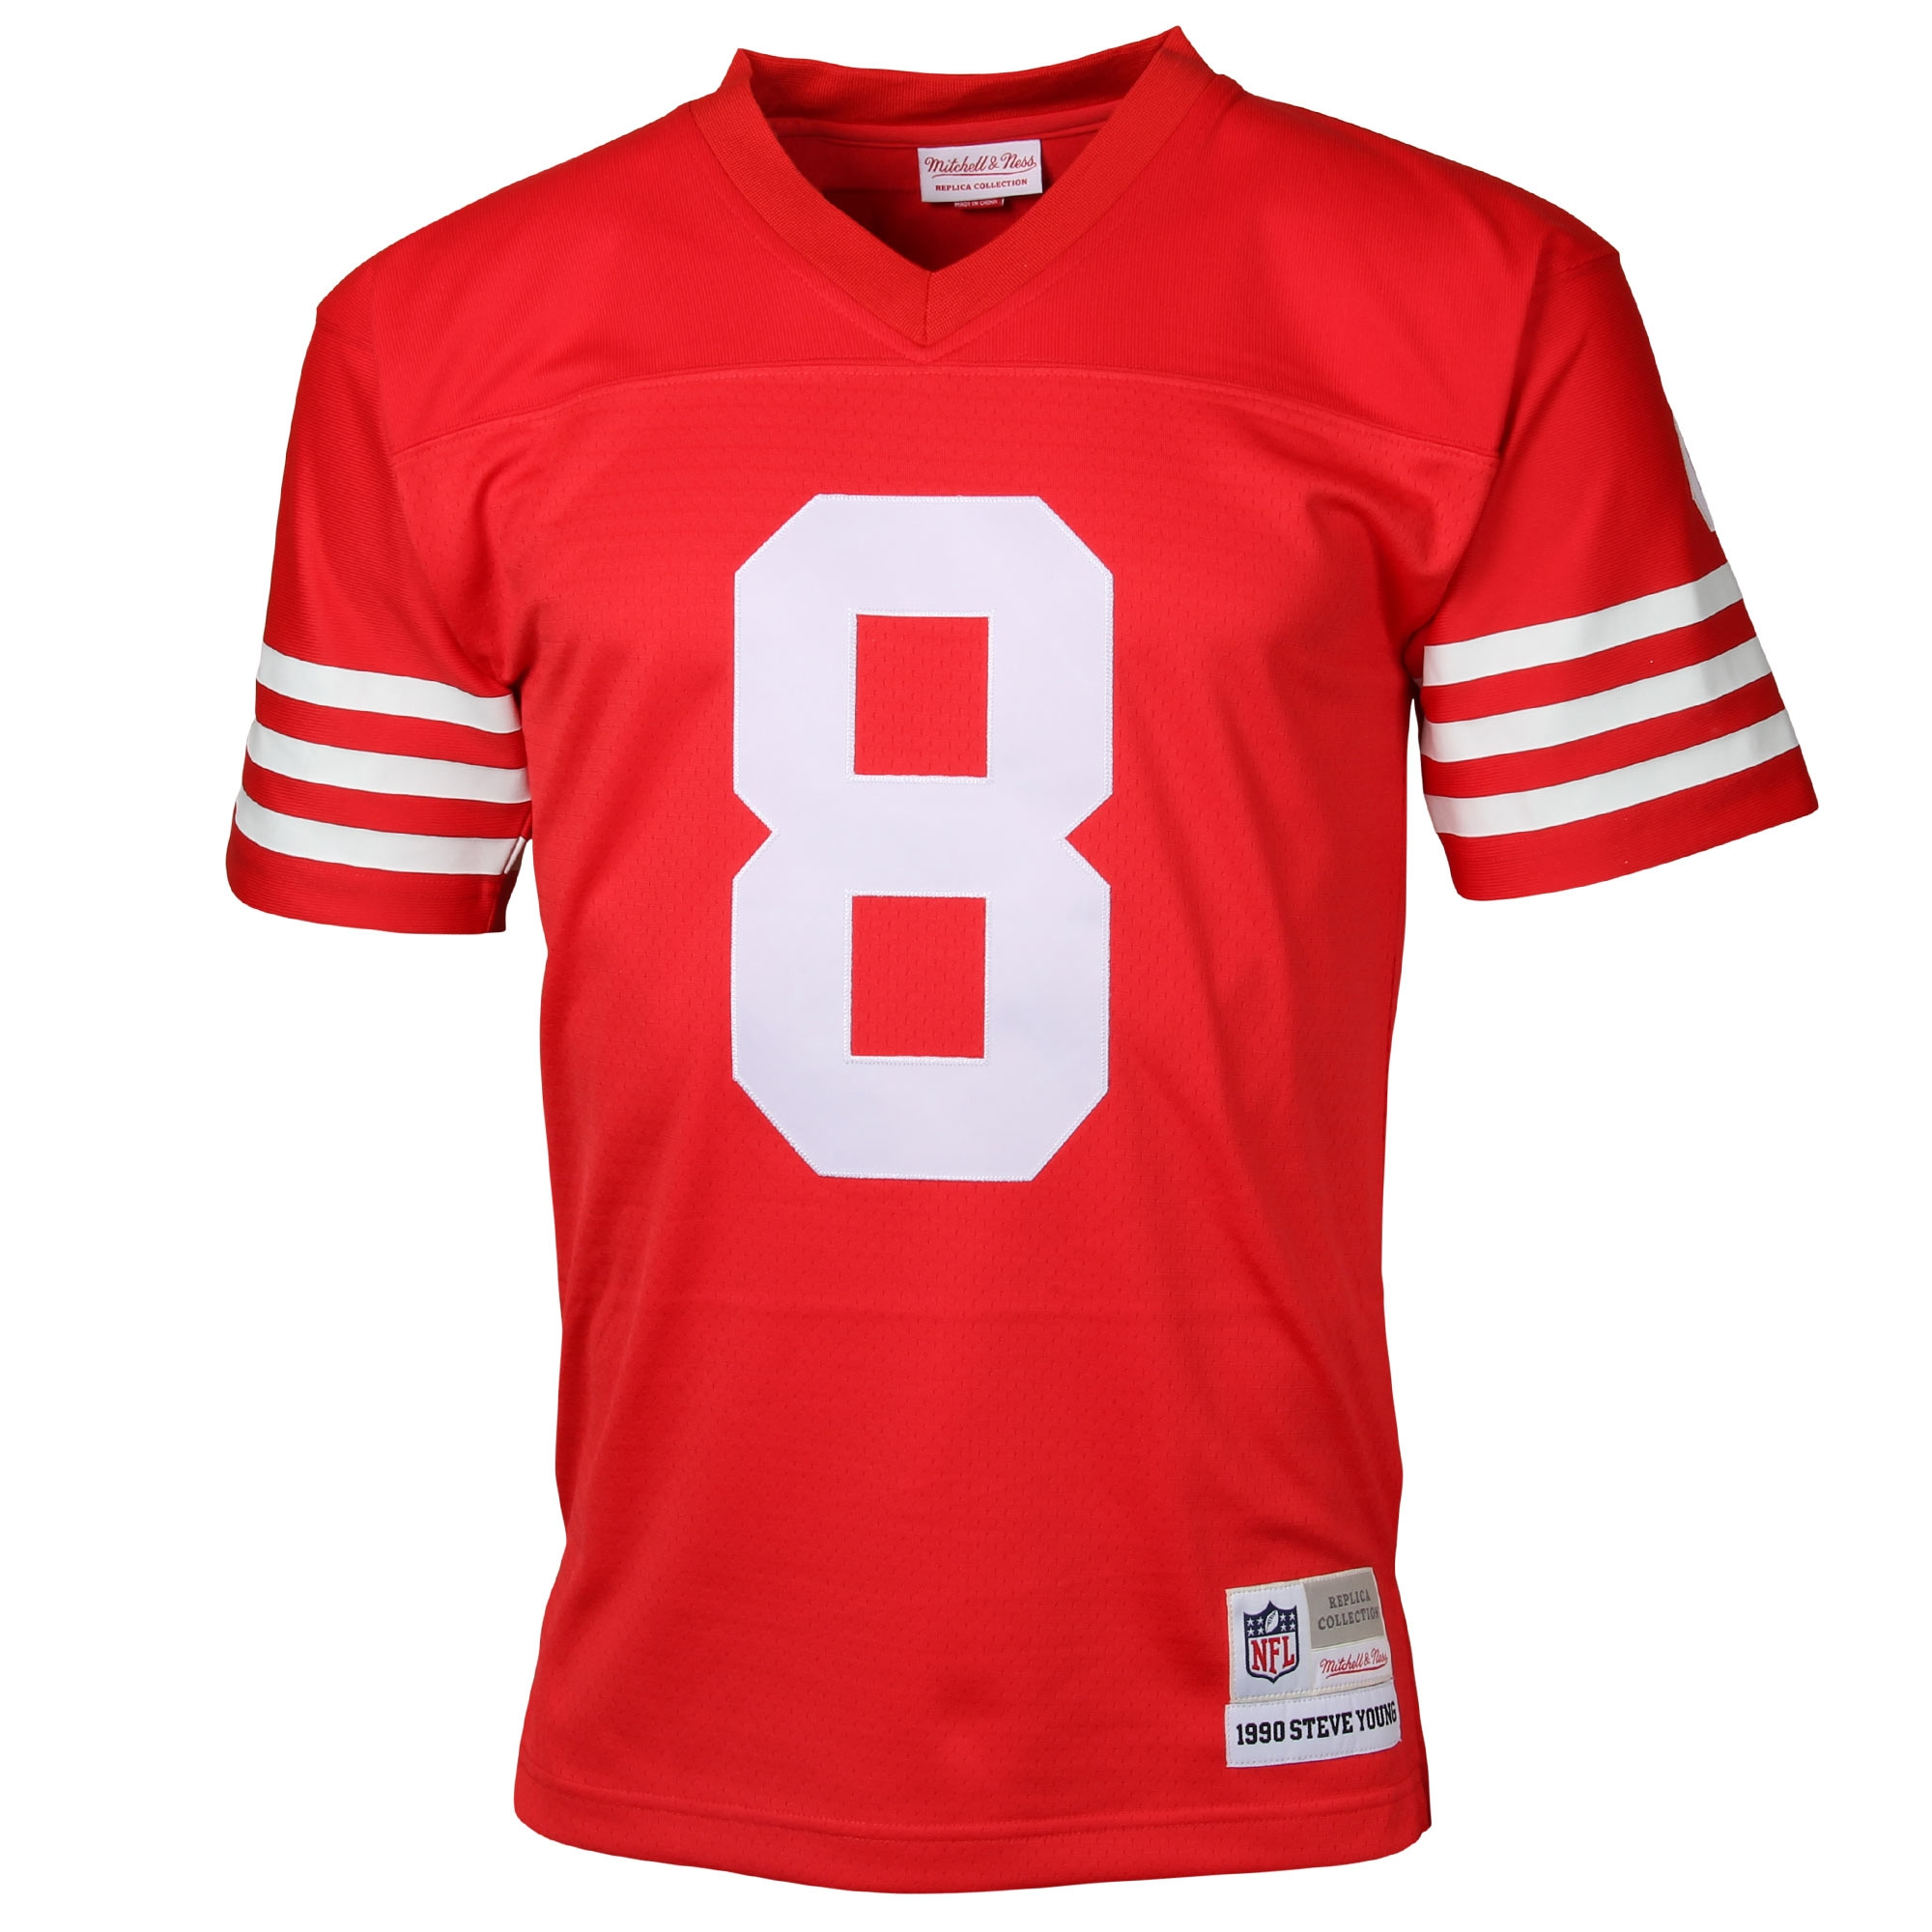 c34c45ad07e Steve Young San Francisco 49ers Mitchell   Ness Retired Player Vintage  Replica Jersey - Scarlet - Walmart.com